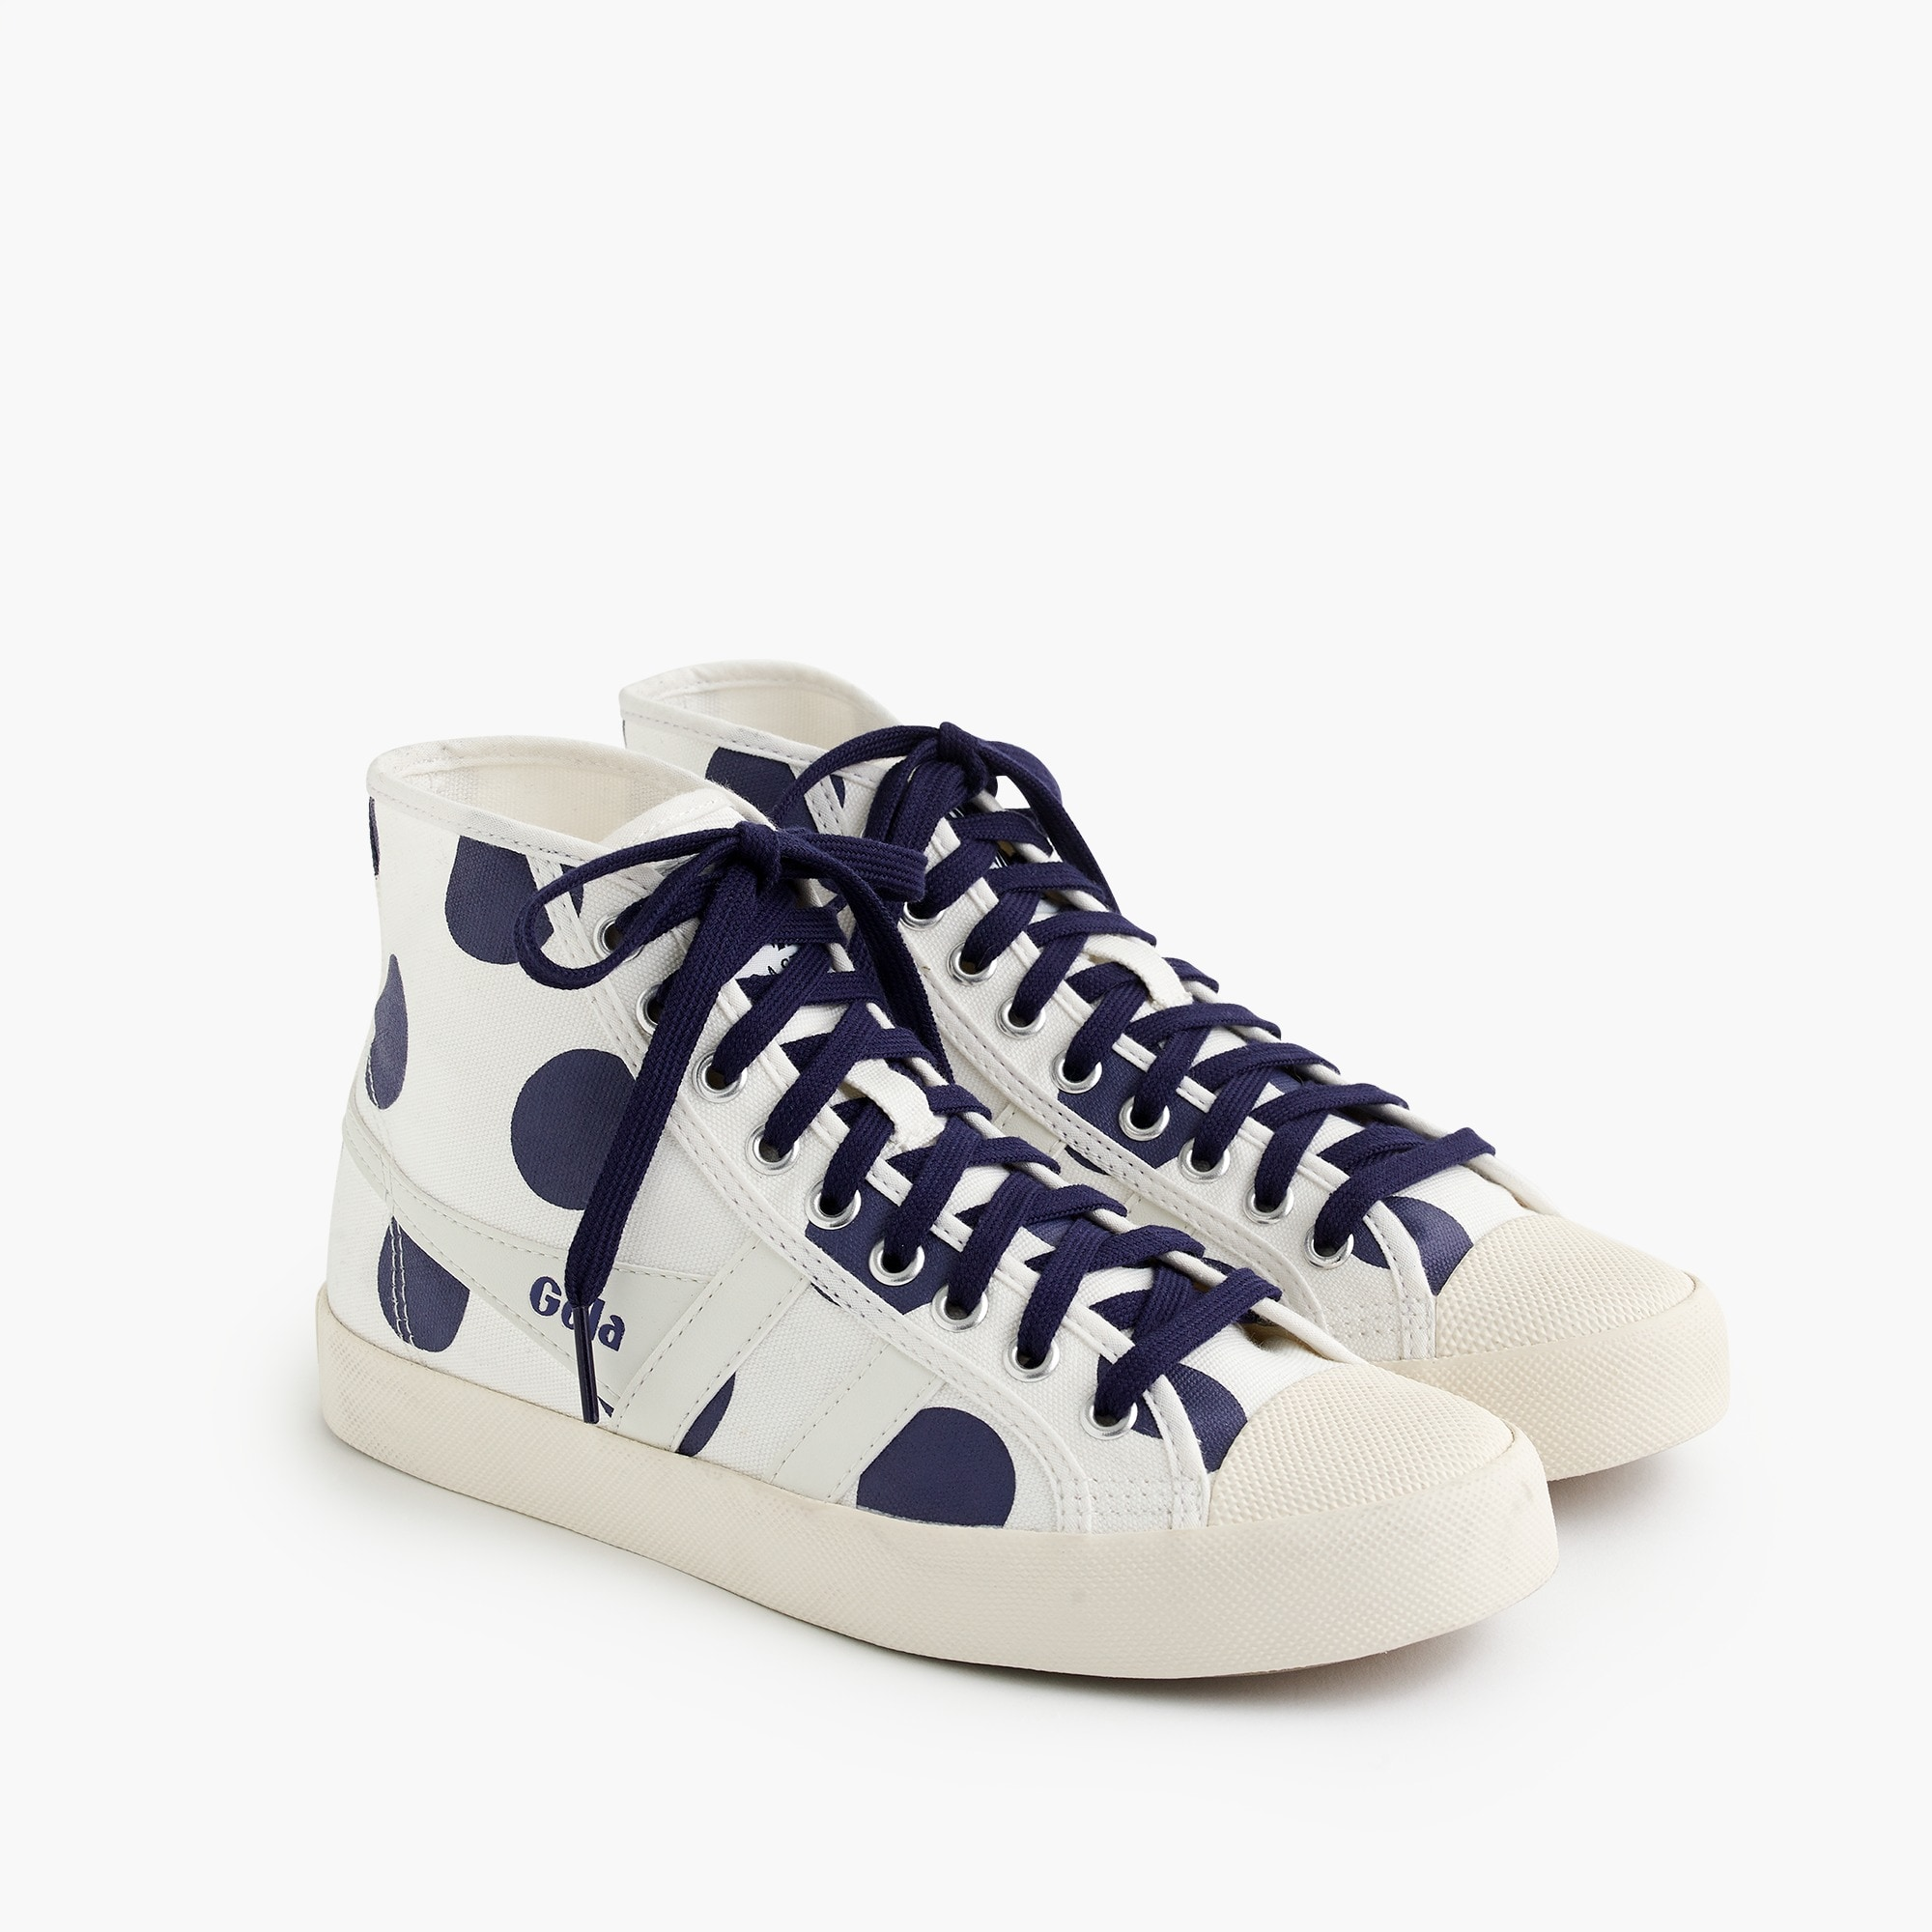 Gola® for J.Crew Coaster high-top sneaker women j.crew in good company c